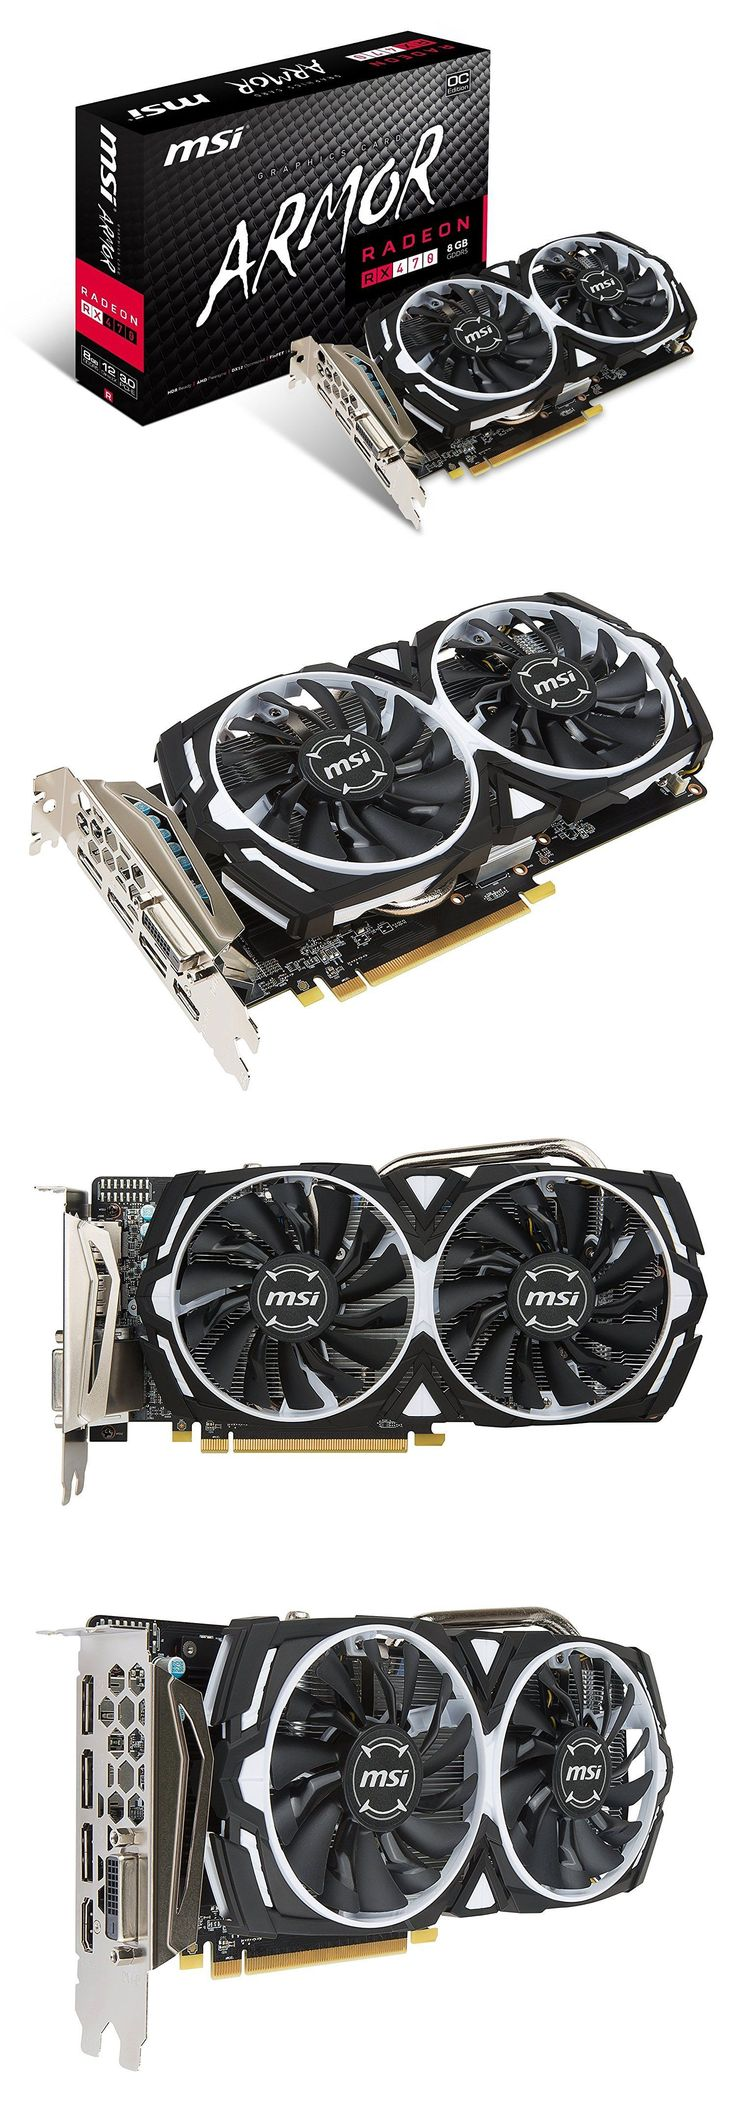 computer parts: Msi Gaming Radeon Rx 470 Armor 8G Oc 8Gb Gddr5 Pci-E 3.0X16 Mining Graphics Card -> BUY IT NOW ONLY: $349.99 on eBay!